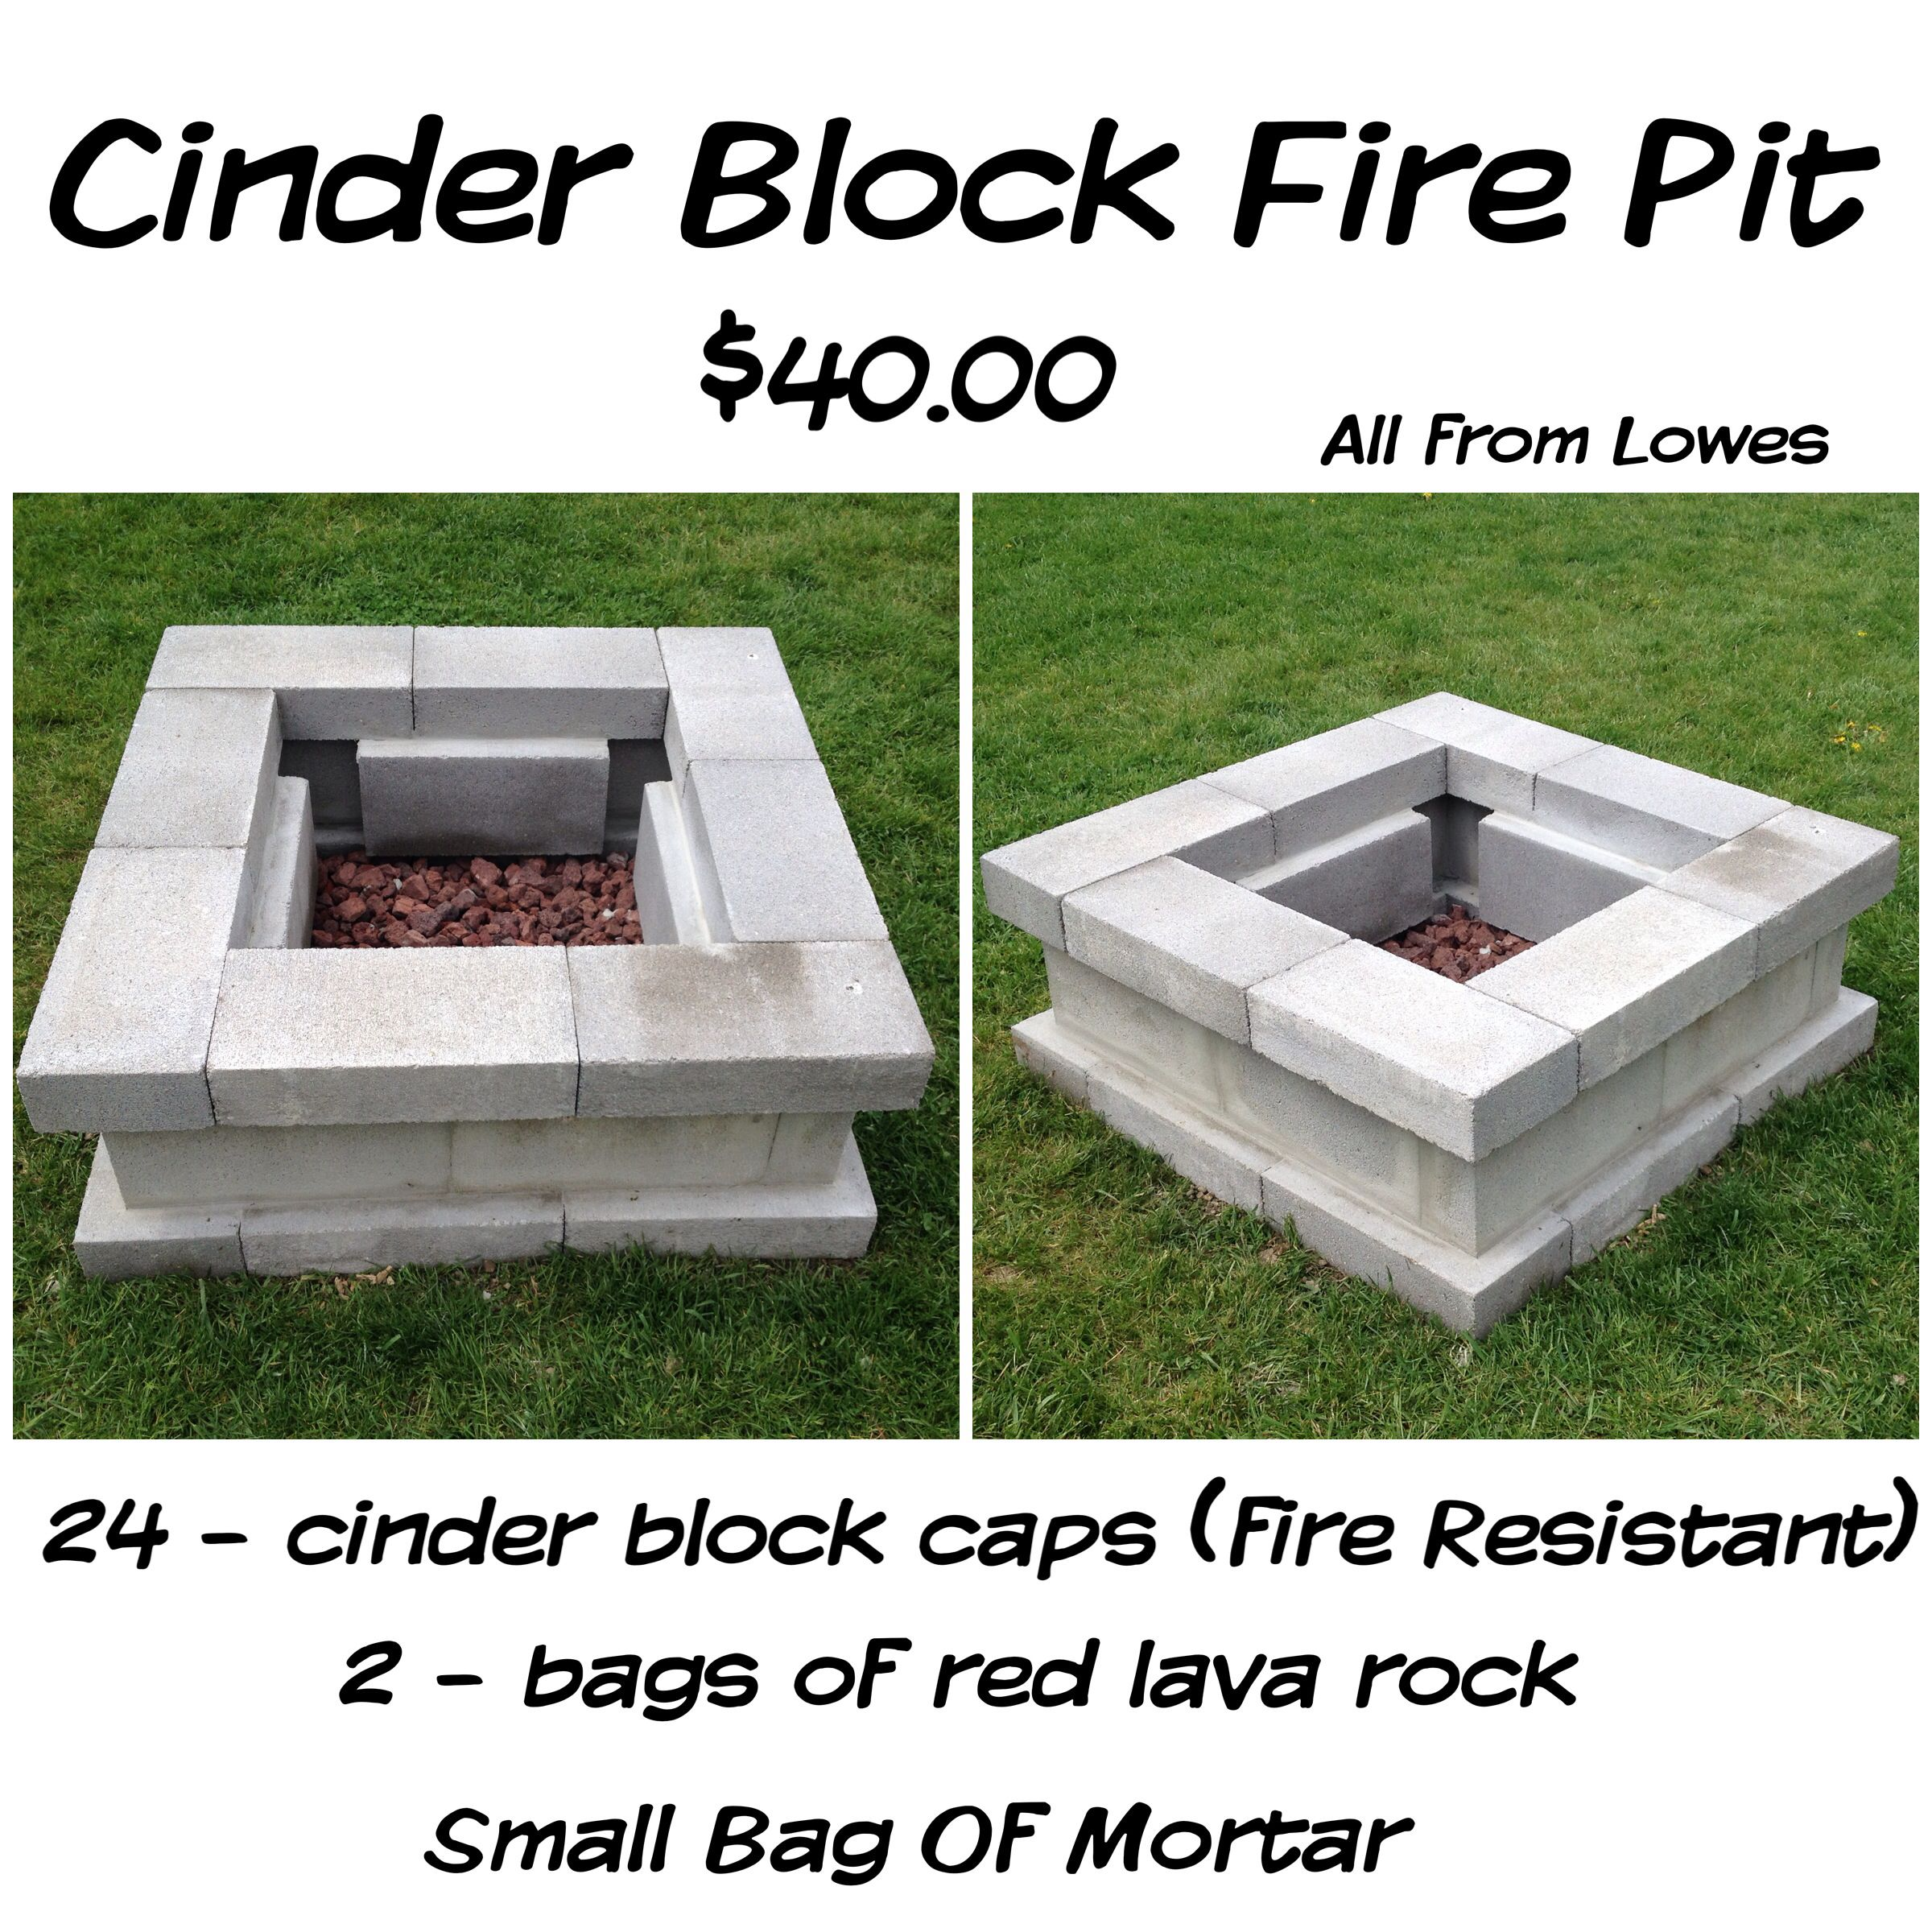 Charming Cinder Block Fire Pit For Just $40 28 Cinder Block Caps (fire Resistant)  Small